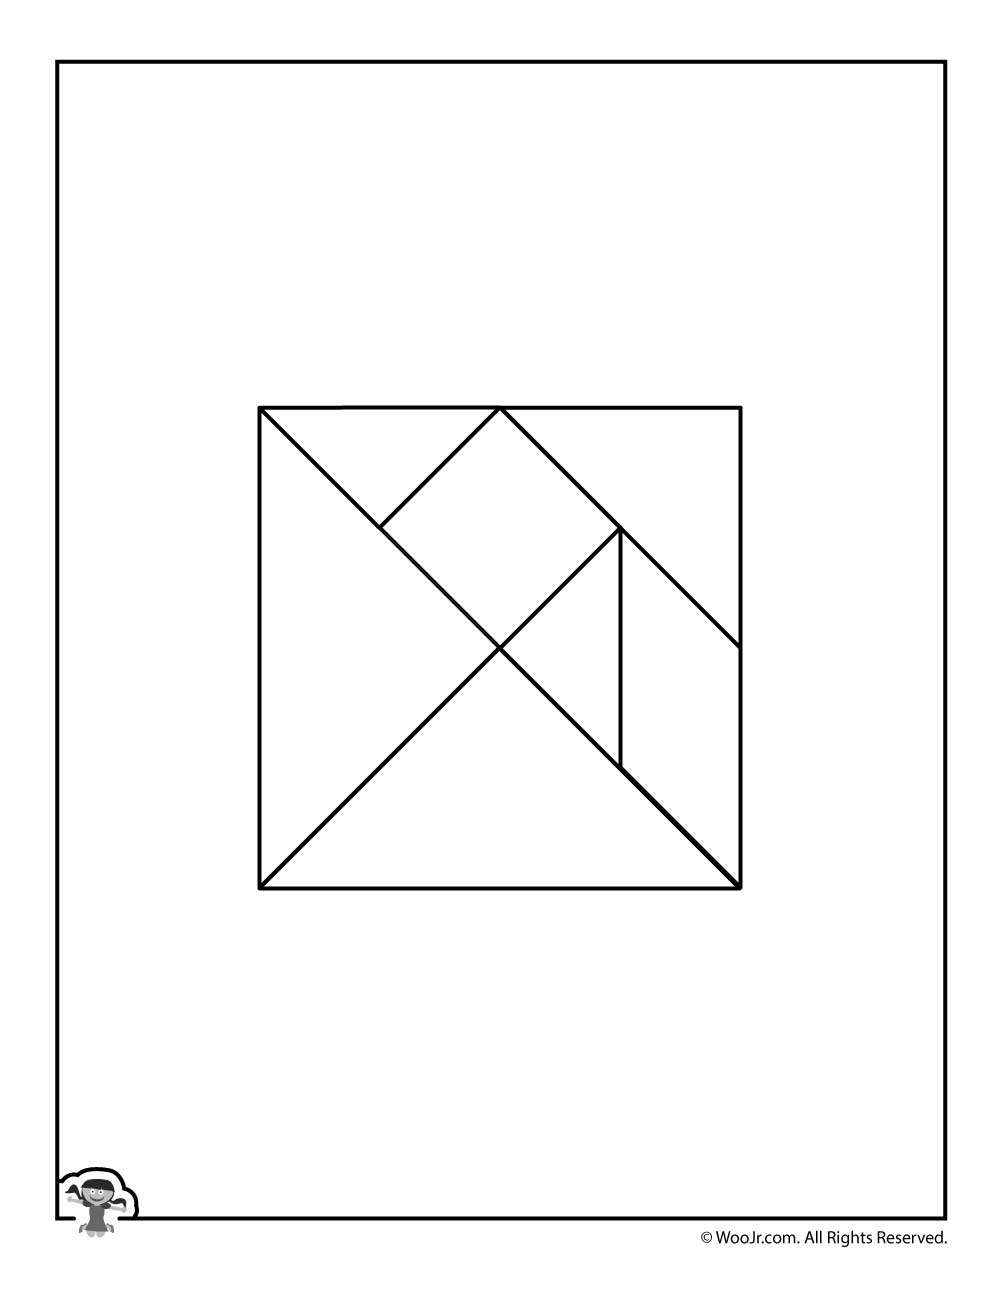 Color Your Own Printable Tangram Puzzle Pieces | Woo! Jr. Kids - Printable Tangram Puzzle